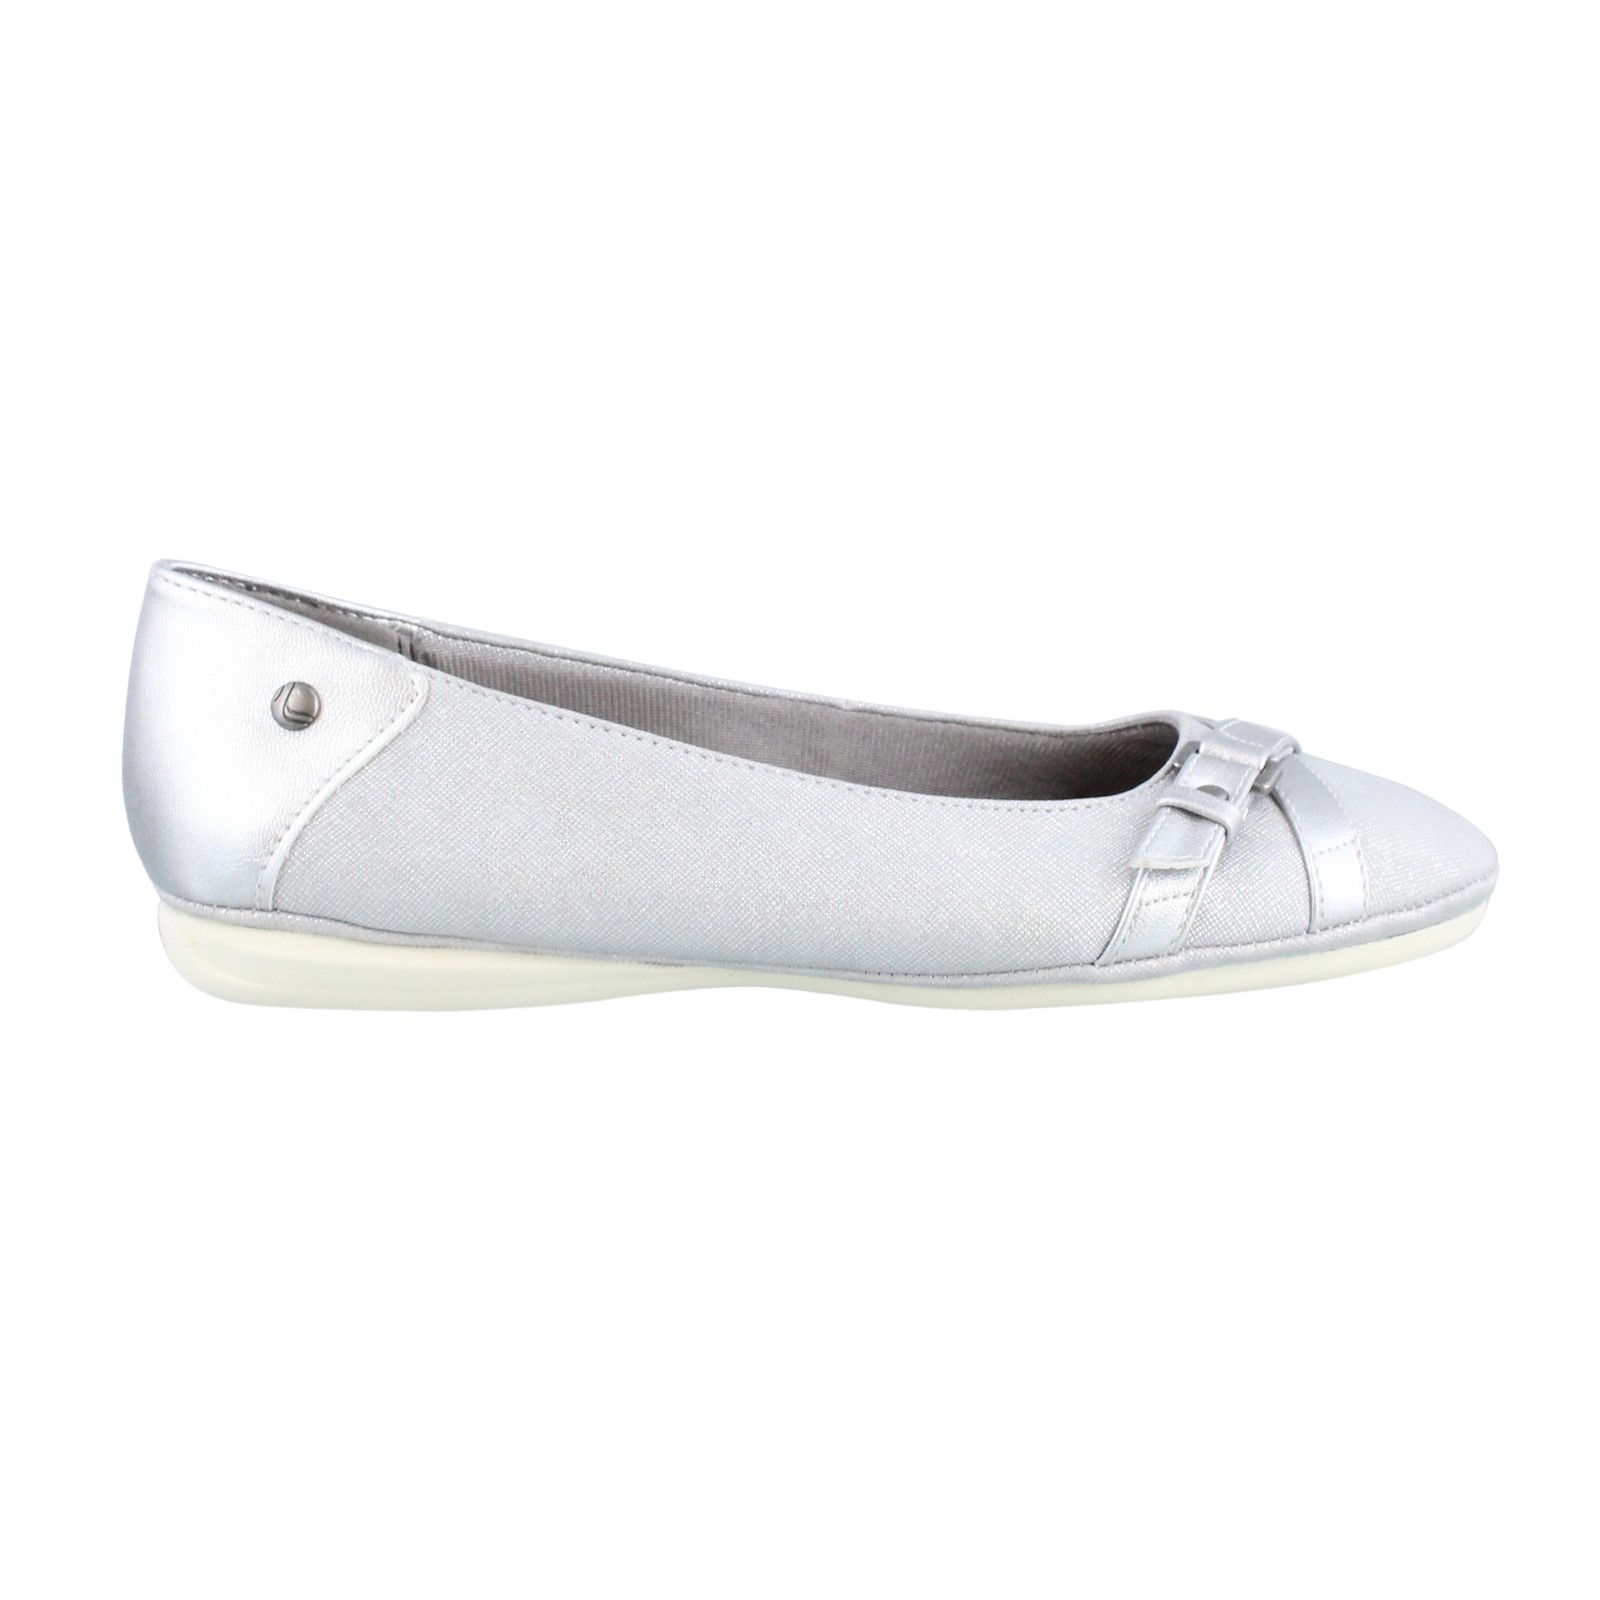 Women's Lifestride, Addy Slip on Flats